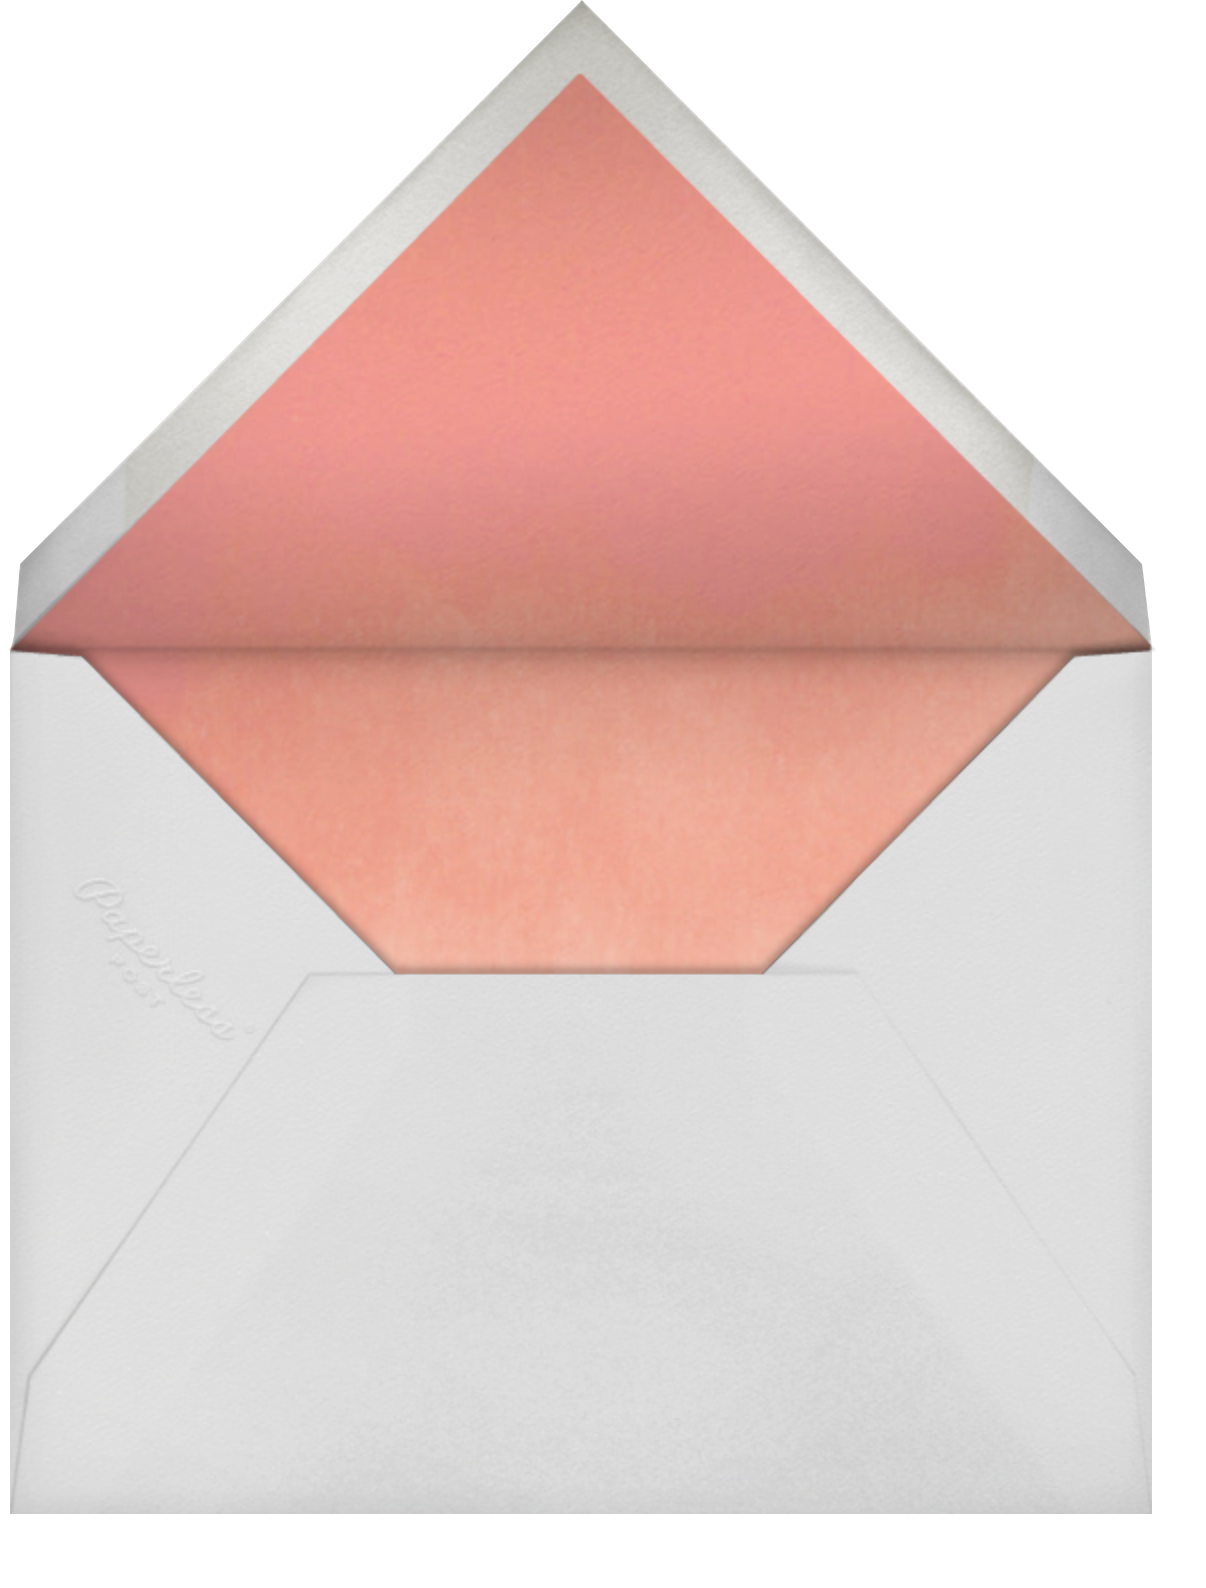 Mon Amour, Ma Vie - Paperless Post - Love cards - envelope back